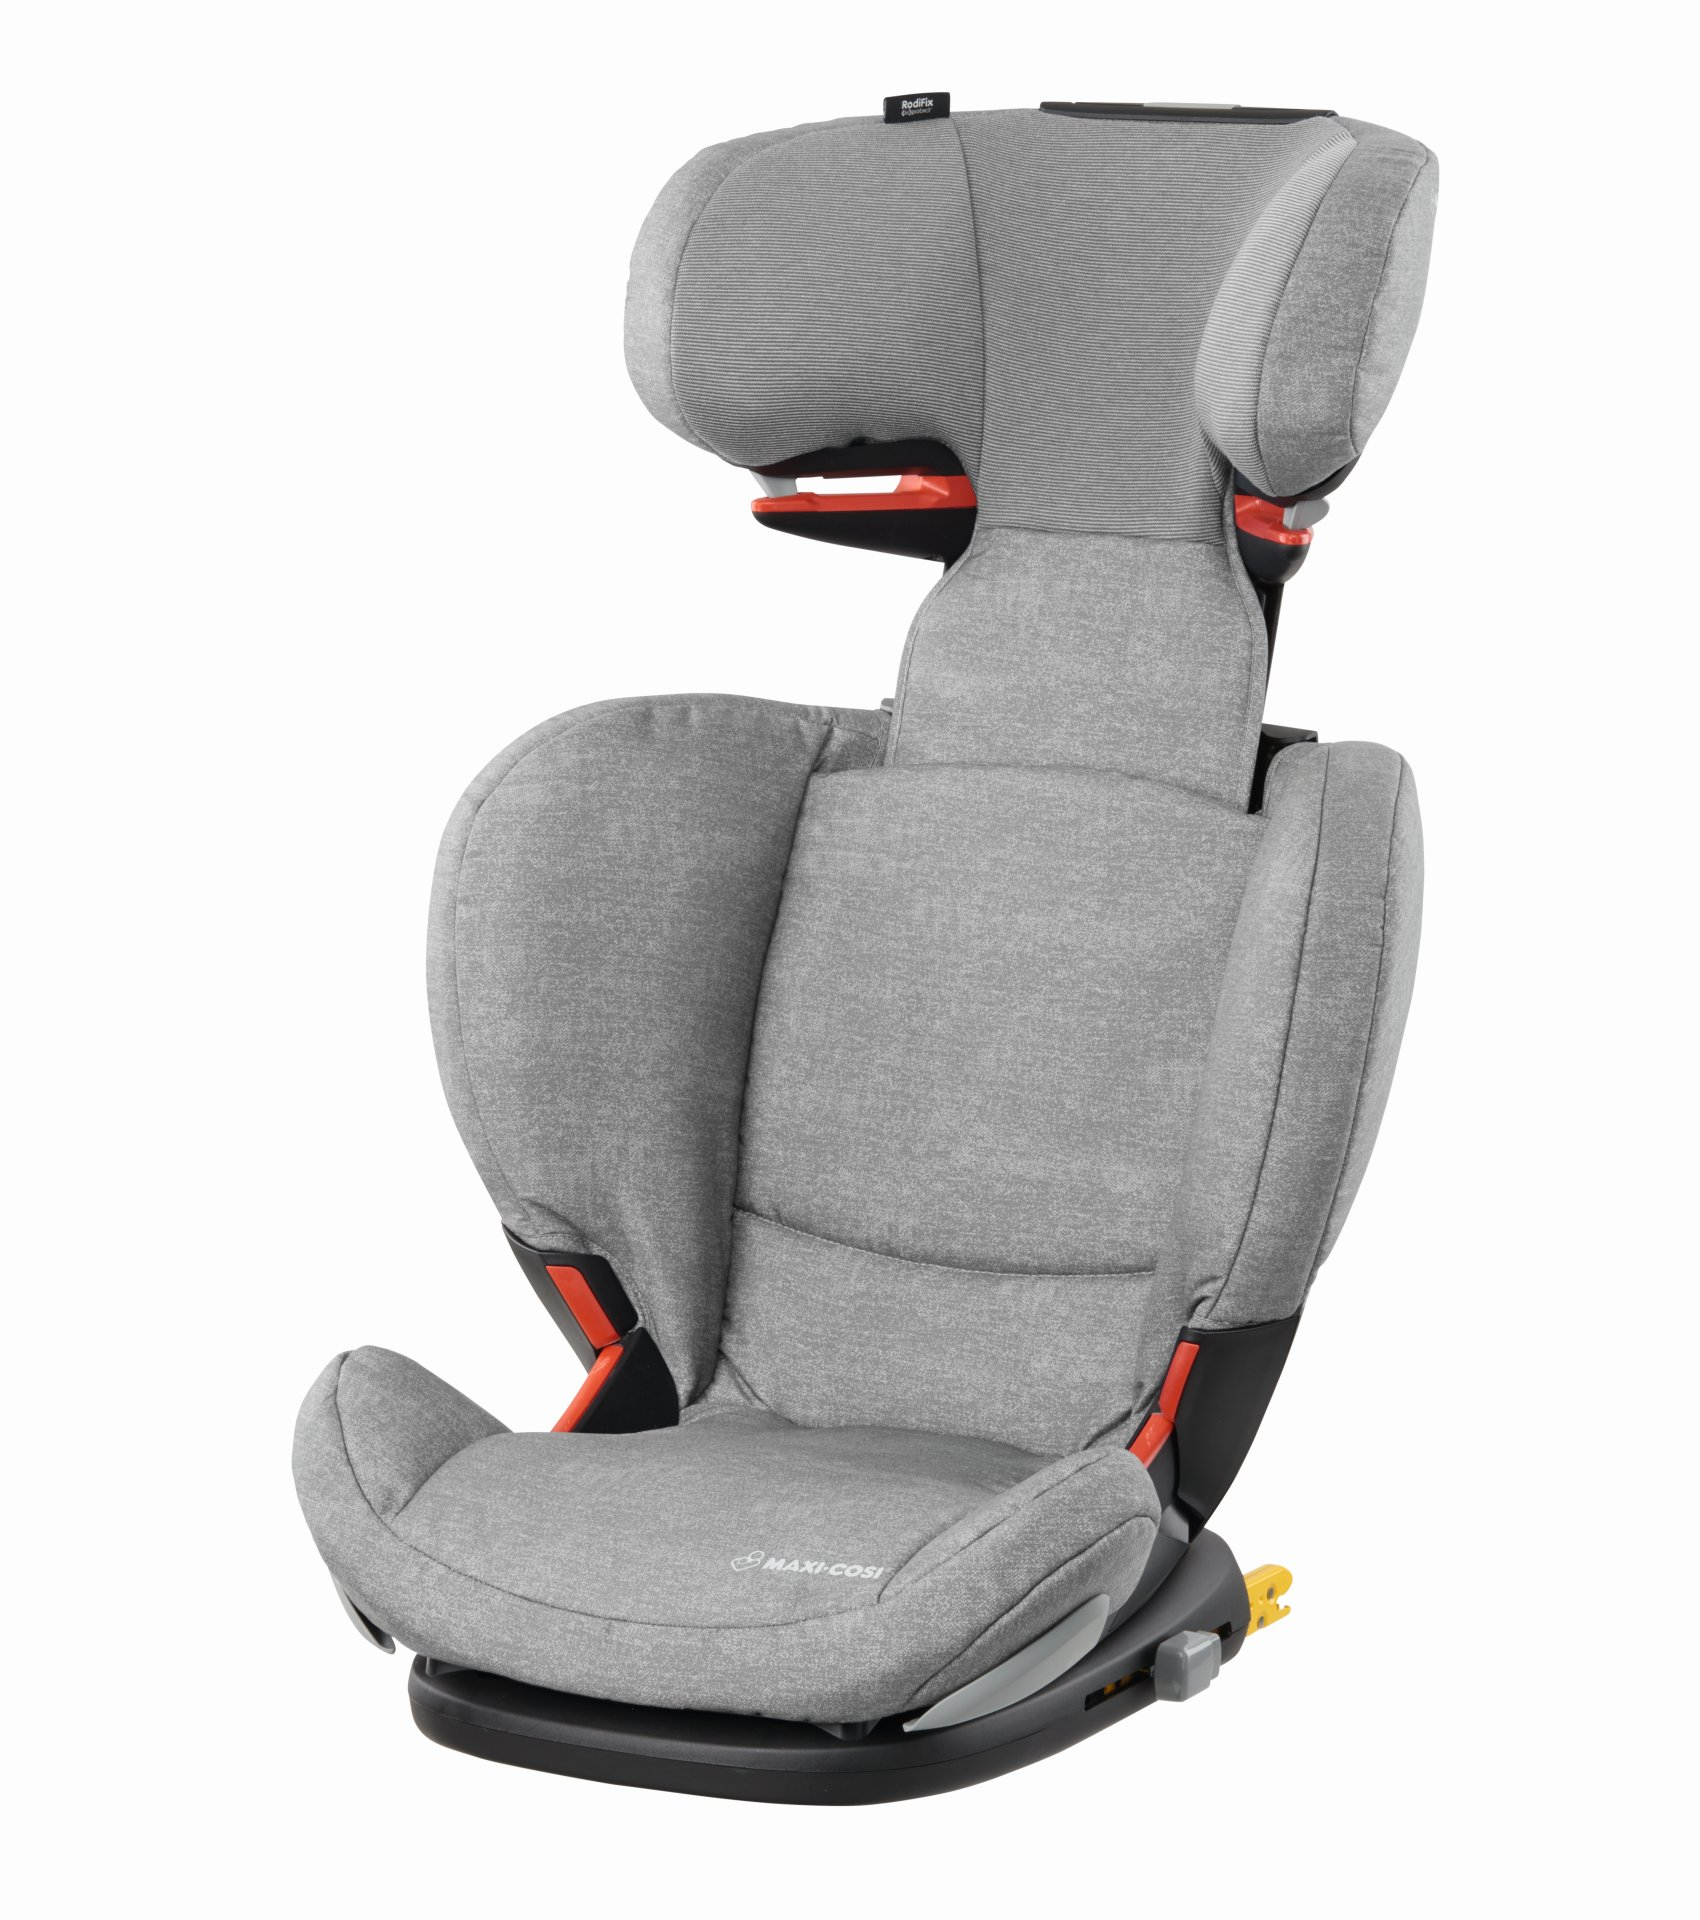 maxi cosi safety seat rodifix airprotect 2018 nomad grey. Black Bedroom Furniture Sets. Home Design Ideas